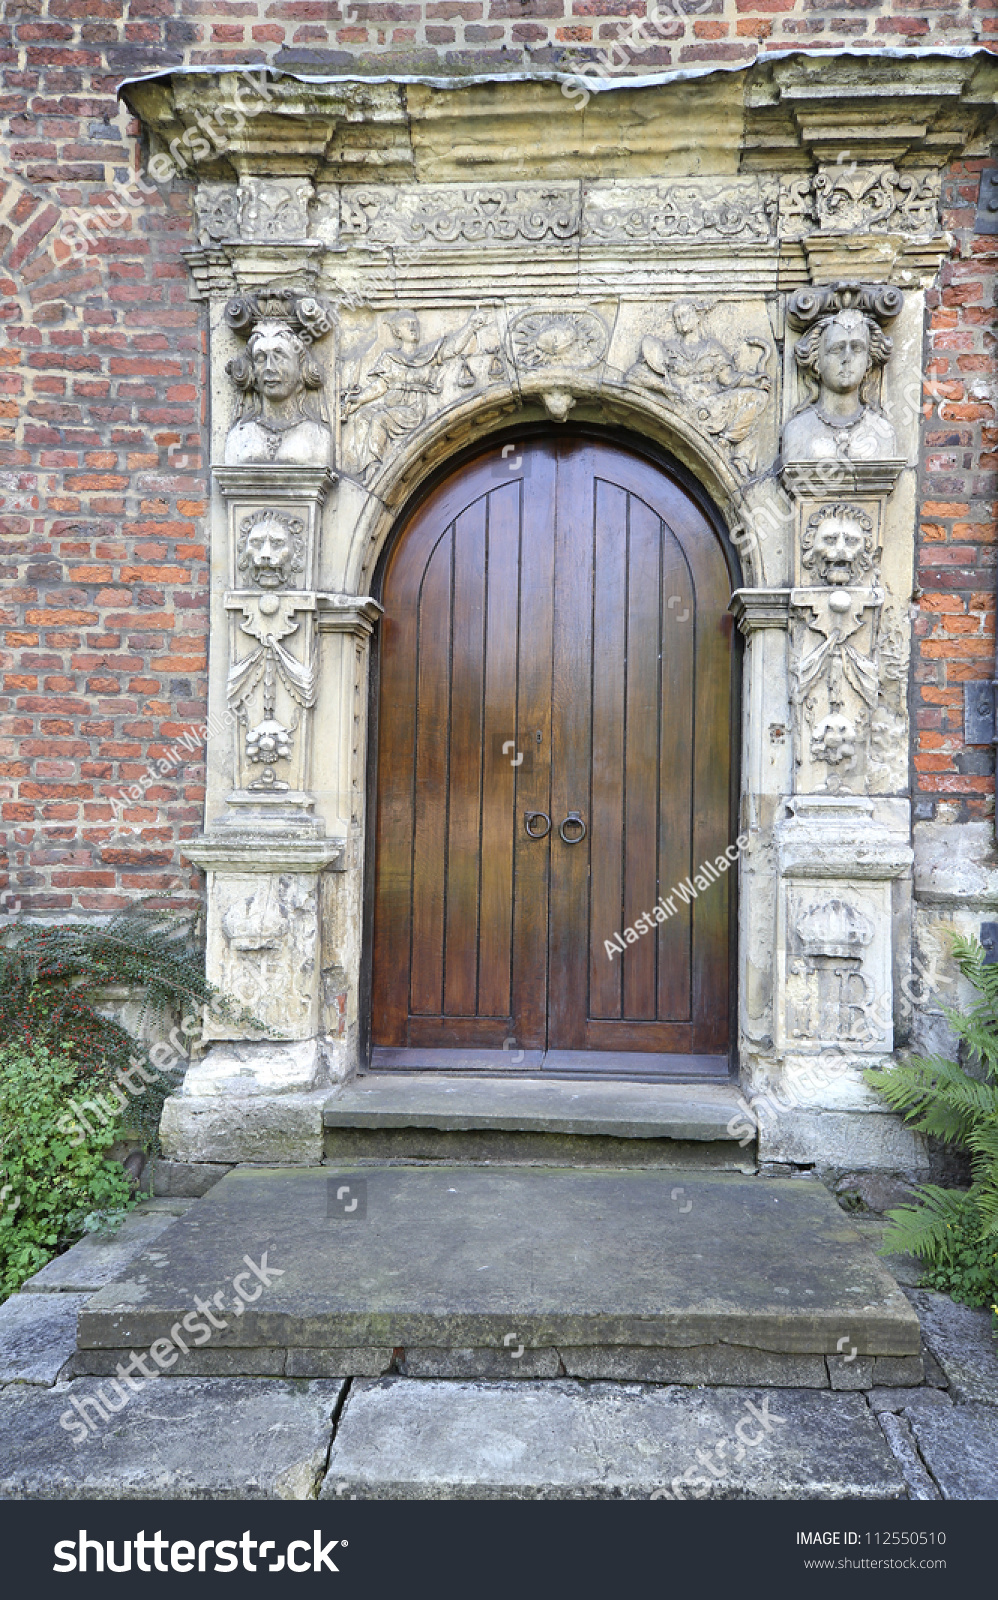 Elizabethan Door King\u0027s Manor York England : door kings - Pezcame.Com